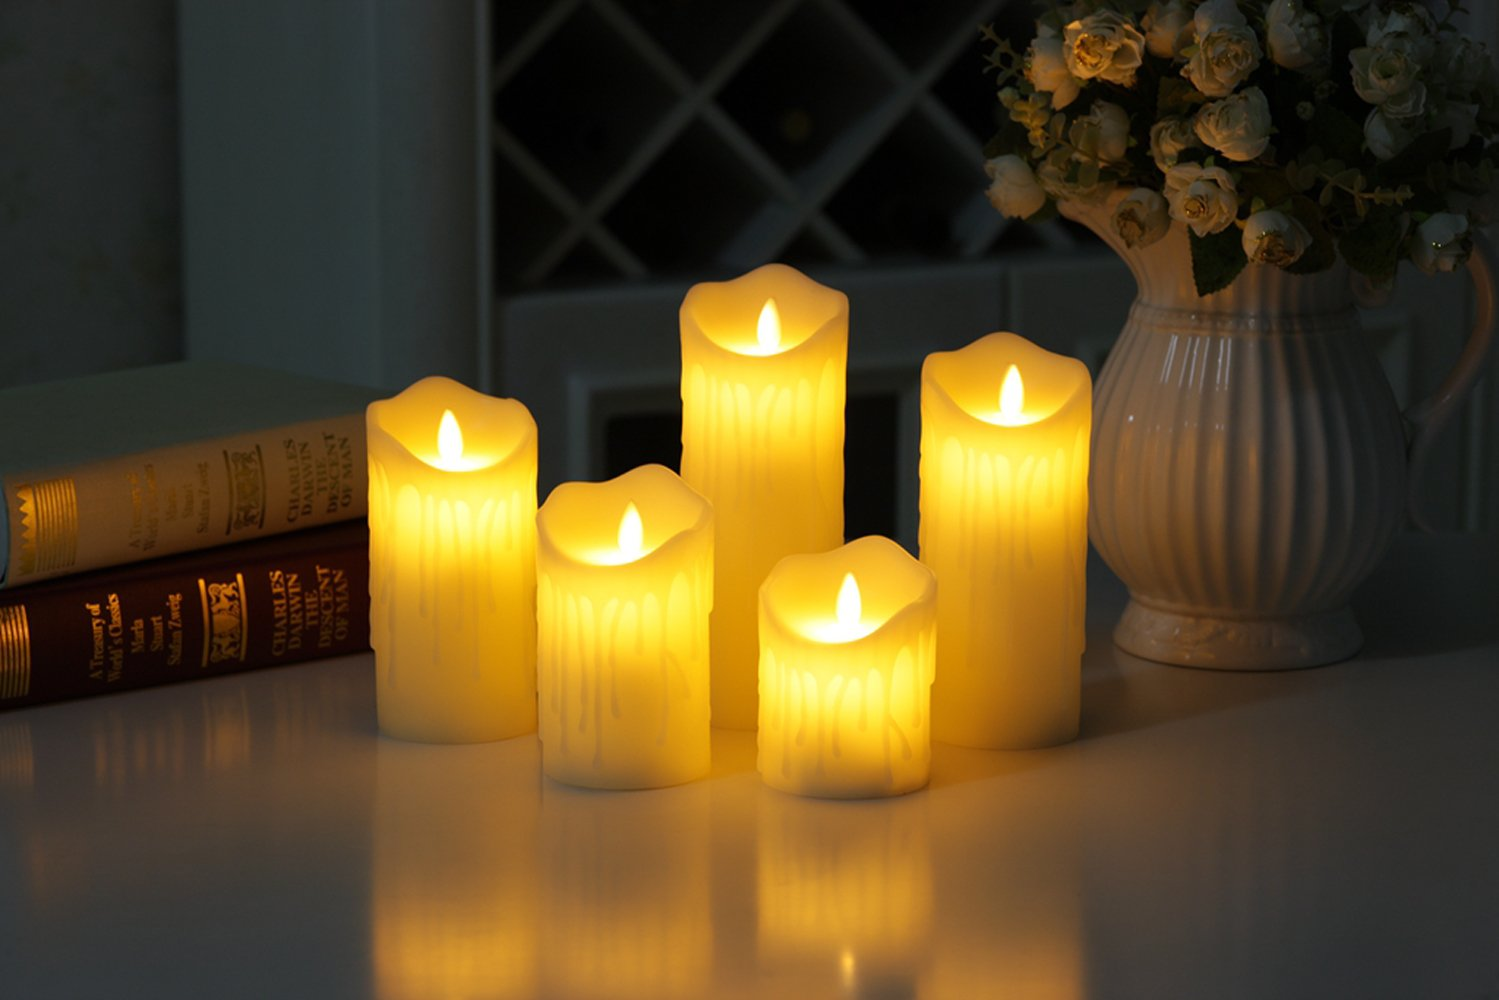 PJS 5-Pack Christmas Dripping Wax Moving Flame Wick Led Candles with Charging(Included USB),Ivory Wax Pillar Bathroom, Chrismas Led Candles with Tearing Flameless Moving Wick Led Candles